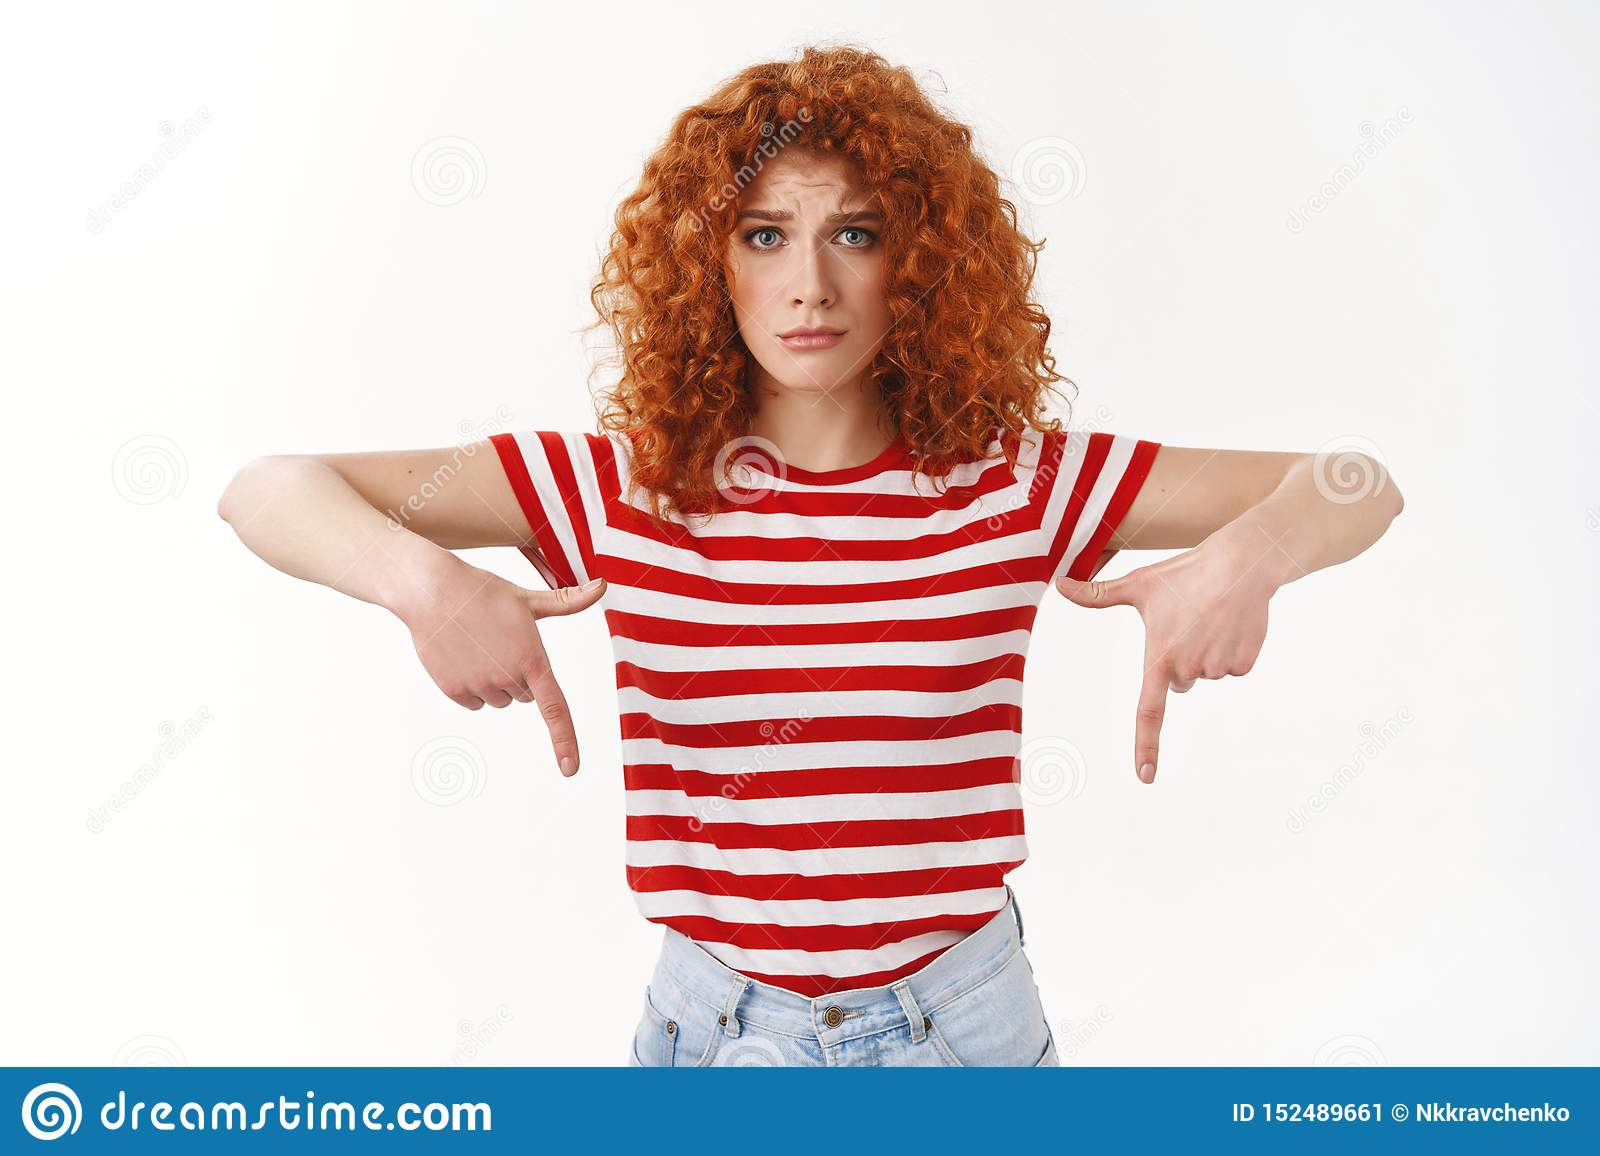 Upset cute silly redhead curly girlfriend complain pointing down frowning look camera disappointed missed promo cool